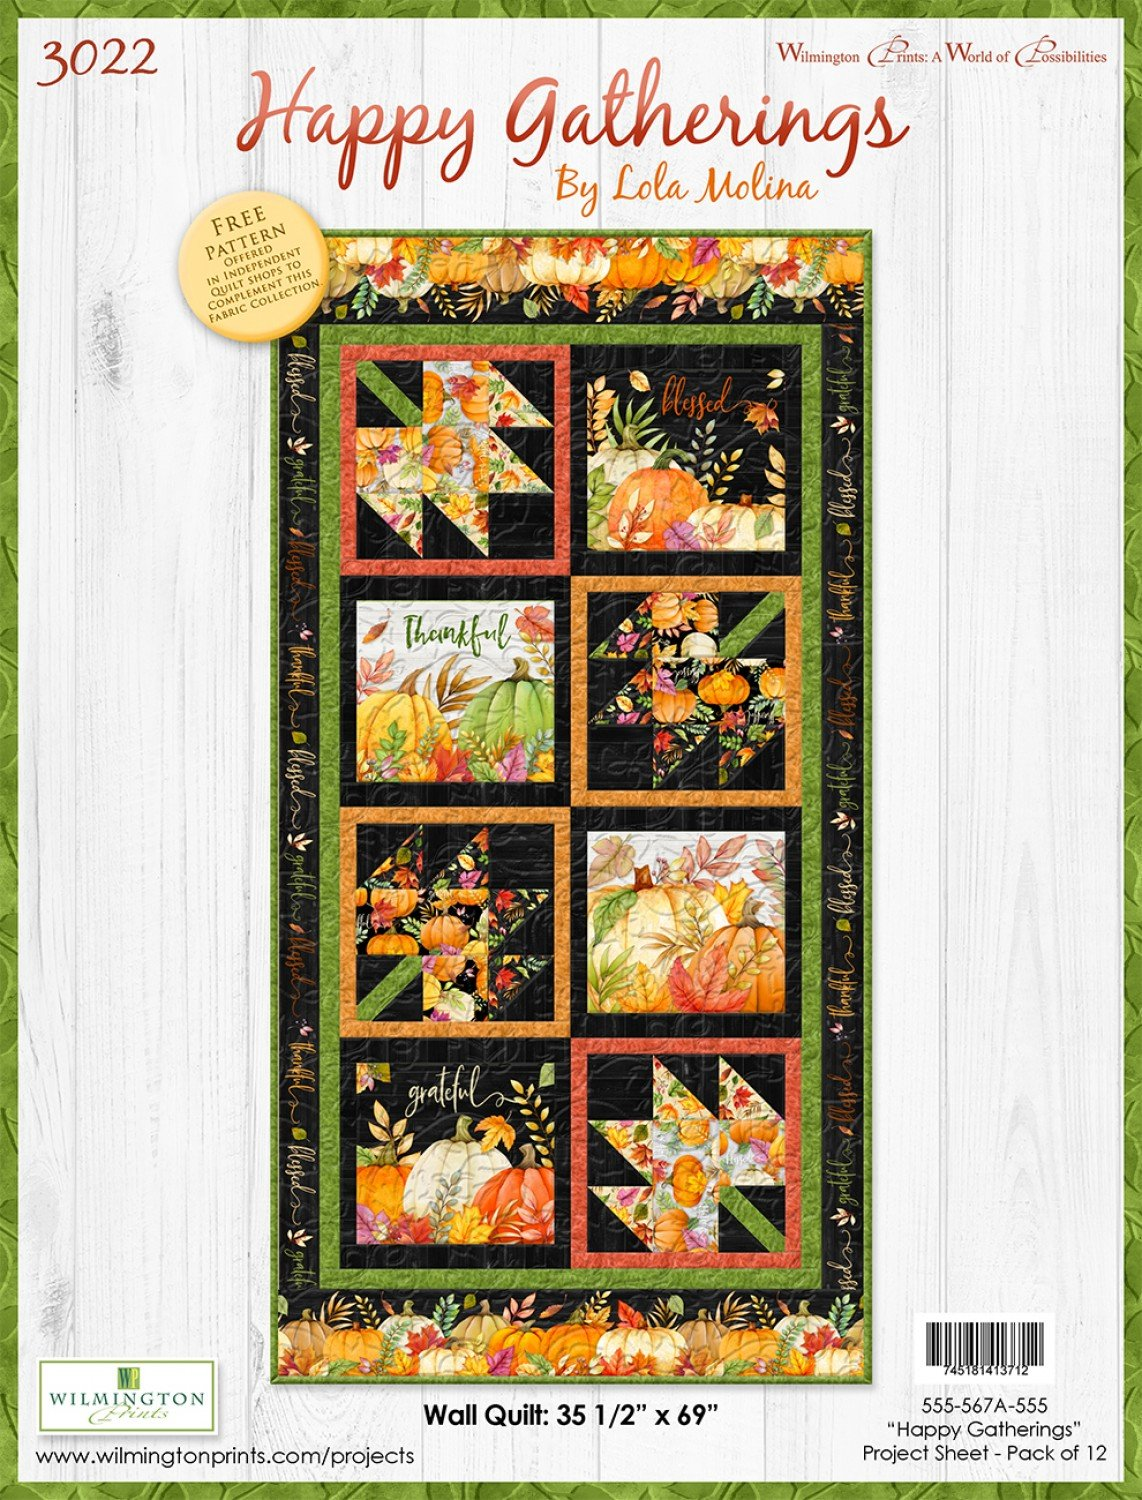 Happy Gatherings Wall Quilt KIT - 36 x 69